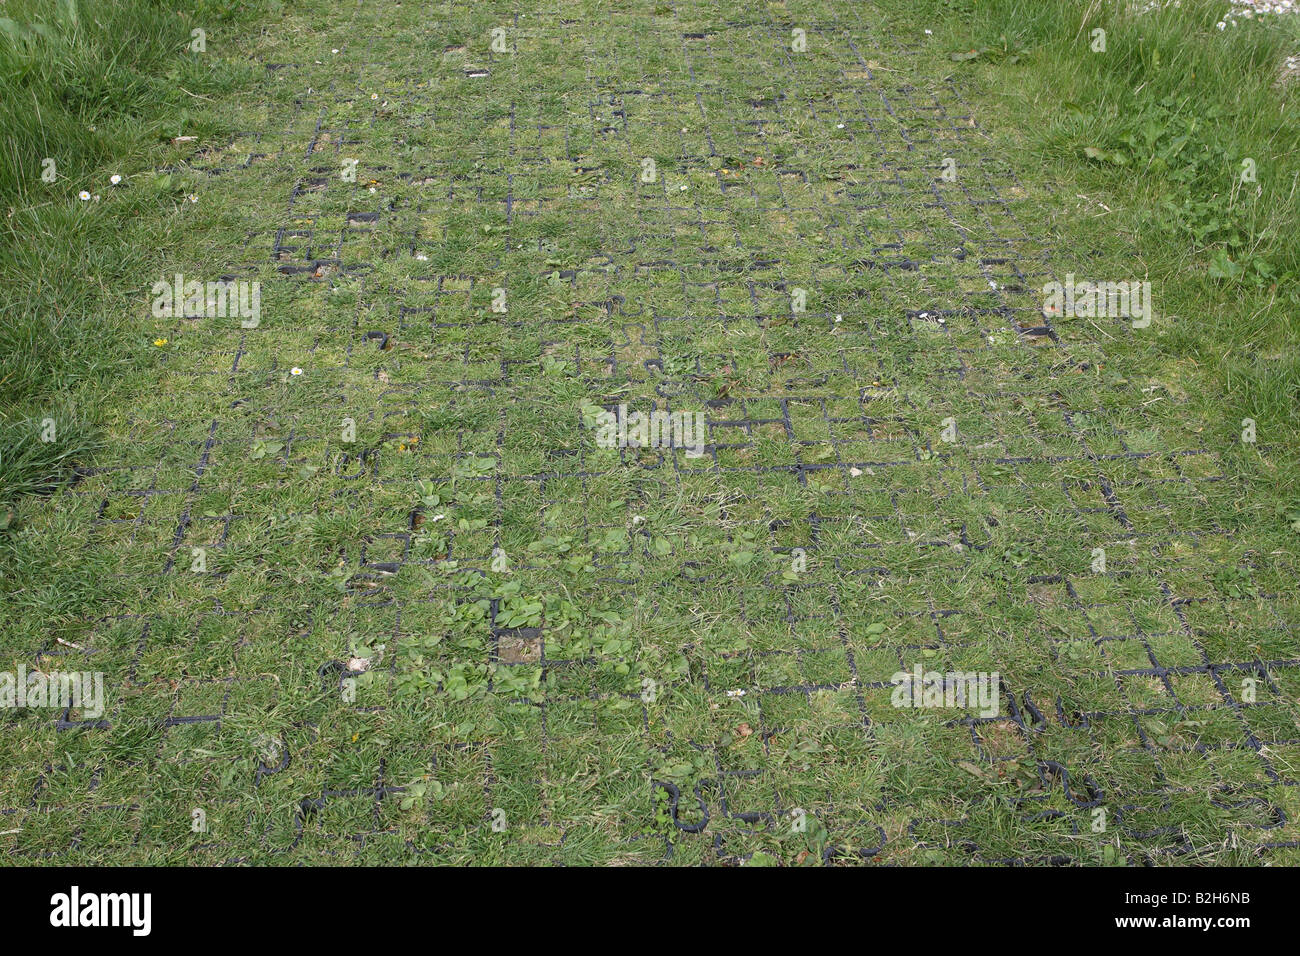 GRASS PATH STRENGTHENING USING PLASTIC CELLS - Stock Image